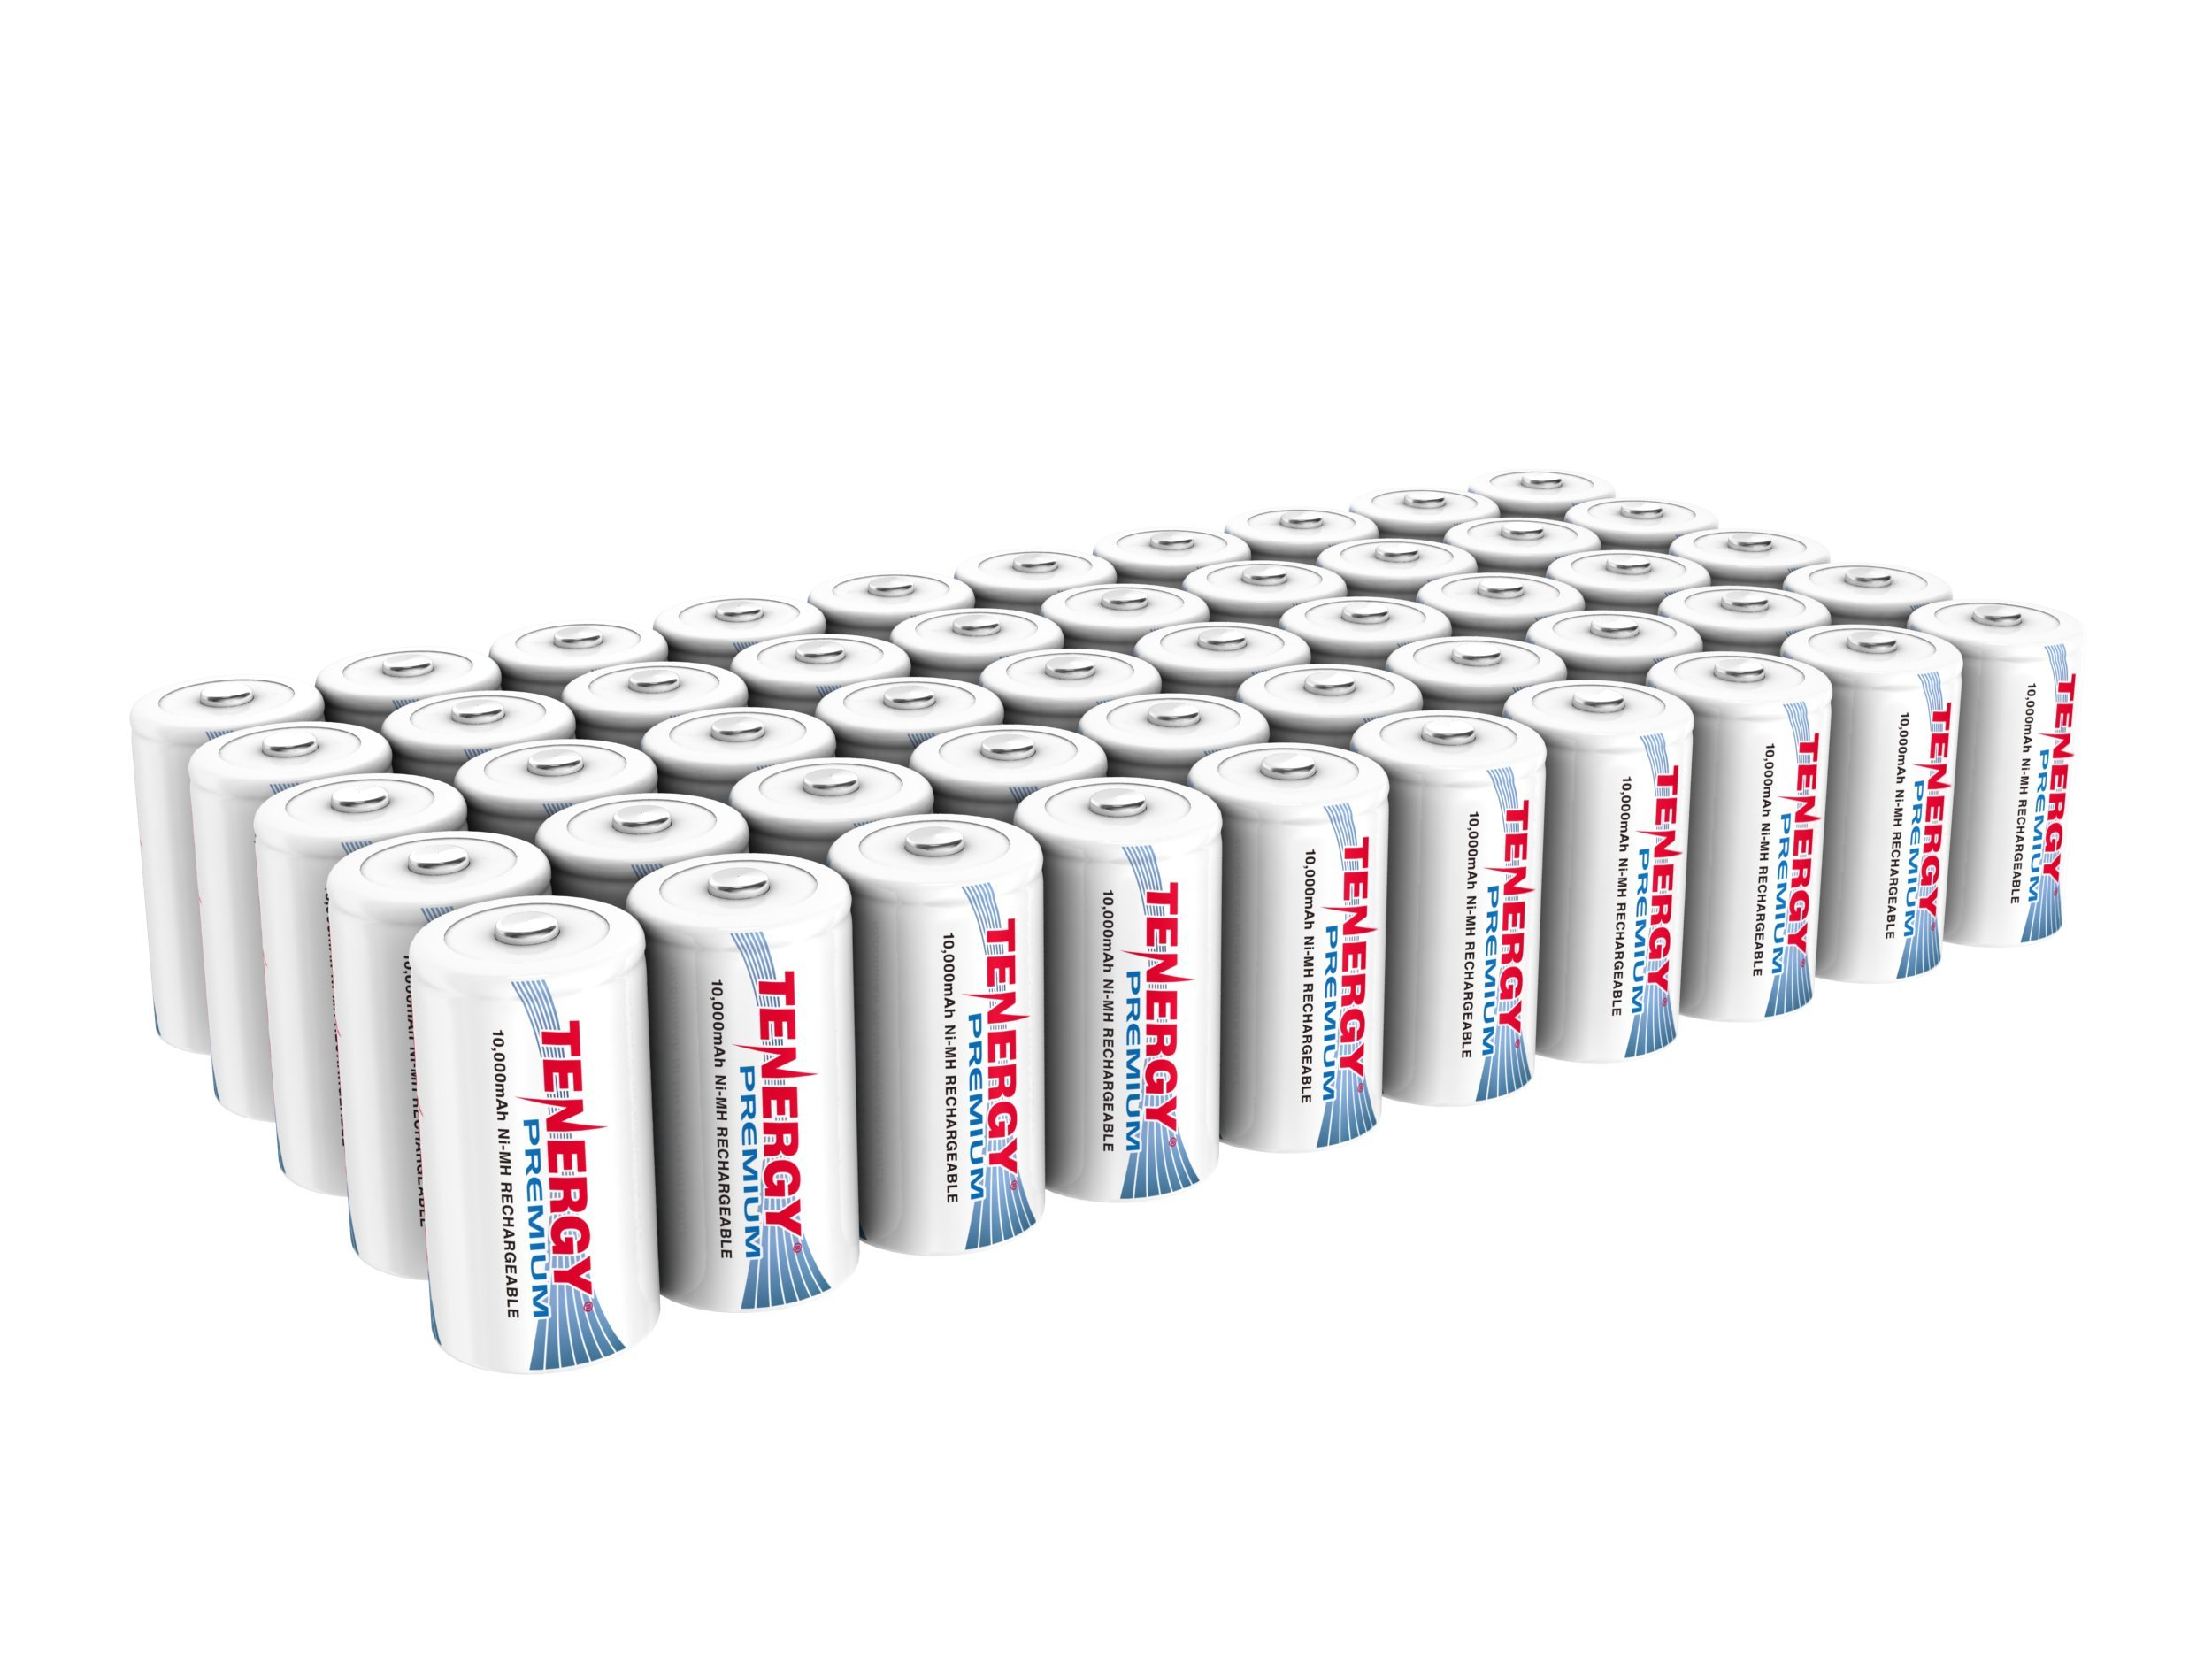 SAVING COMBO: 50 pcs of Tenergy Premium D Size 10,000mAh High Capacity High Rate NiMH Rechargeable Batteries by Tenergy